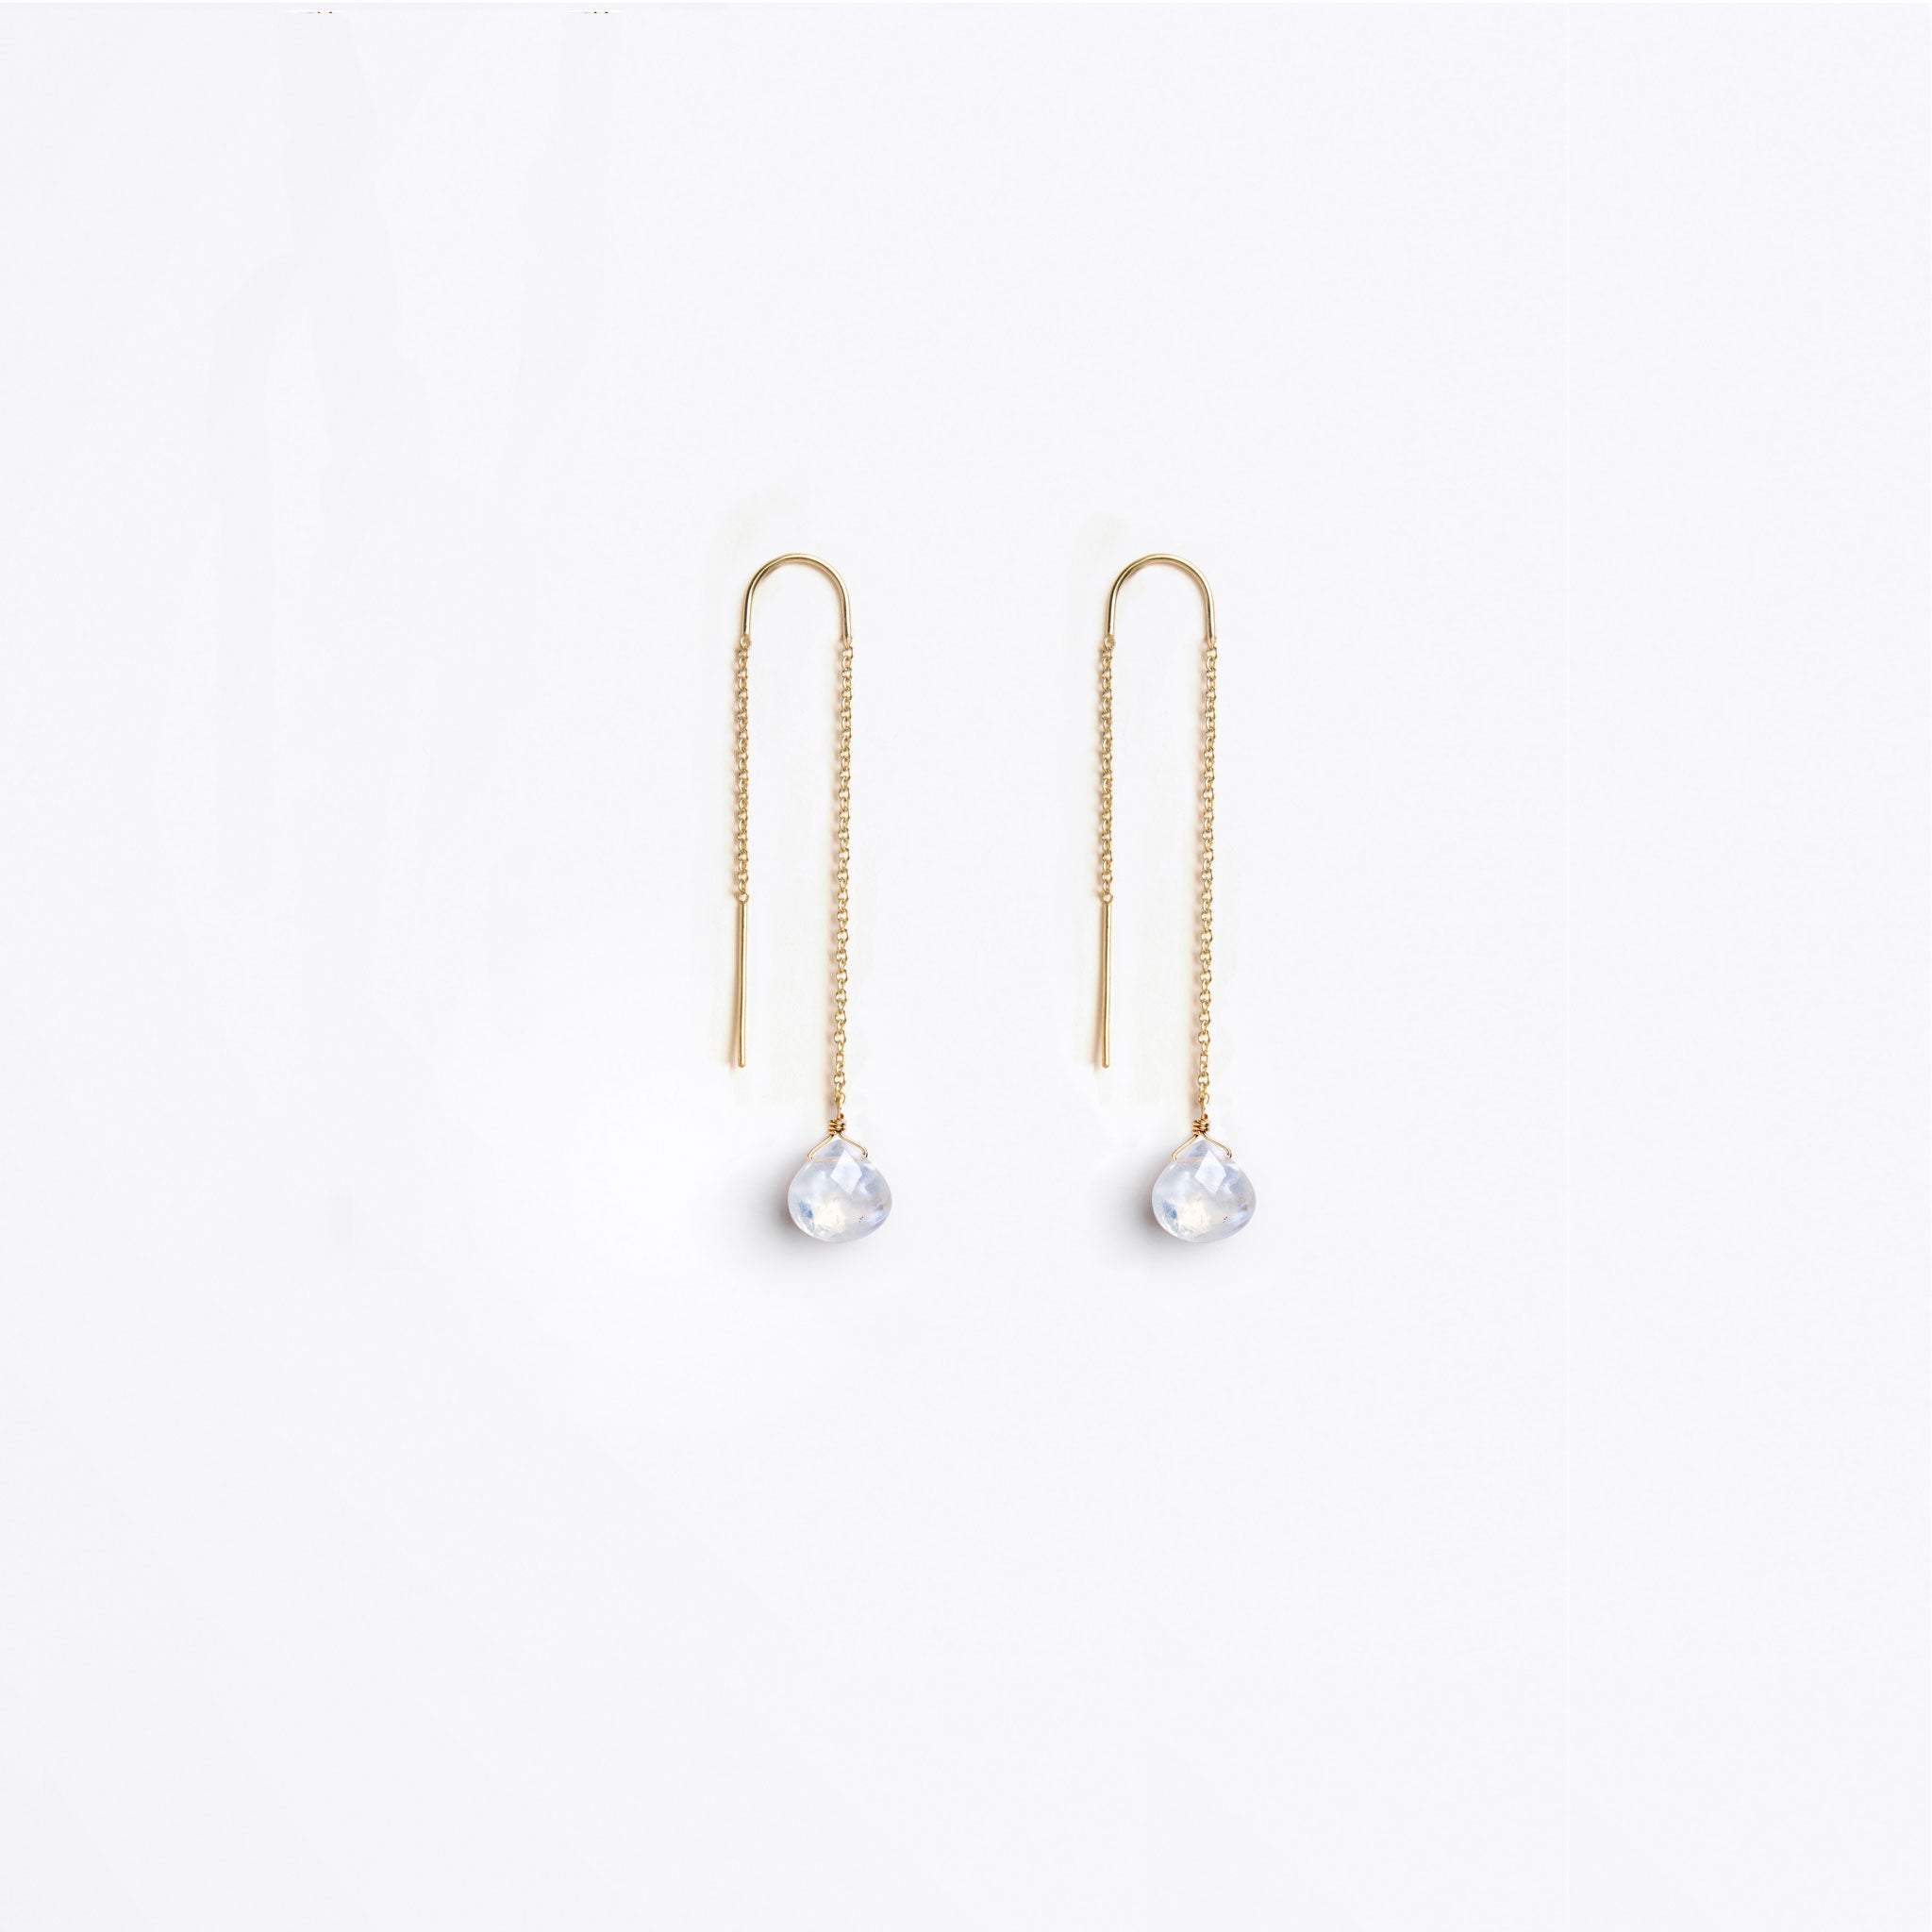 Wanderlust Life Ethically Handmade jewellery made in the UK. Minimalist gold and fine cord jewellery. the wedding collection, waterfall earring, rainbow moonstone